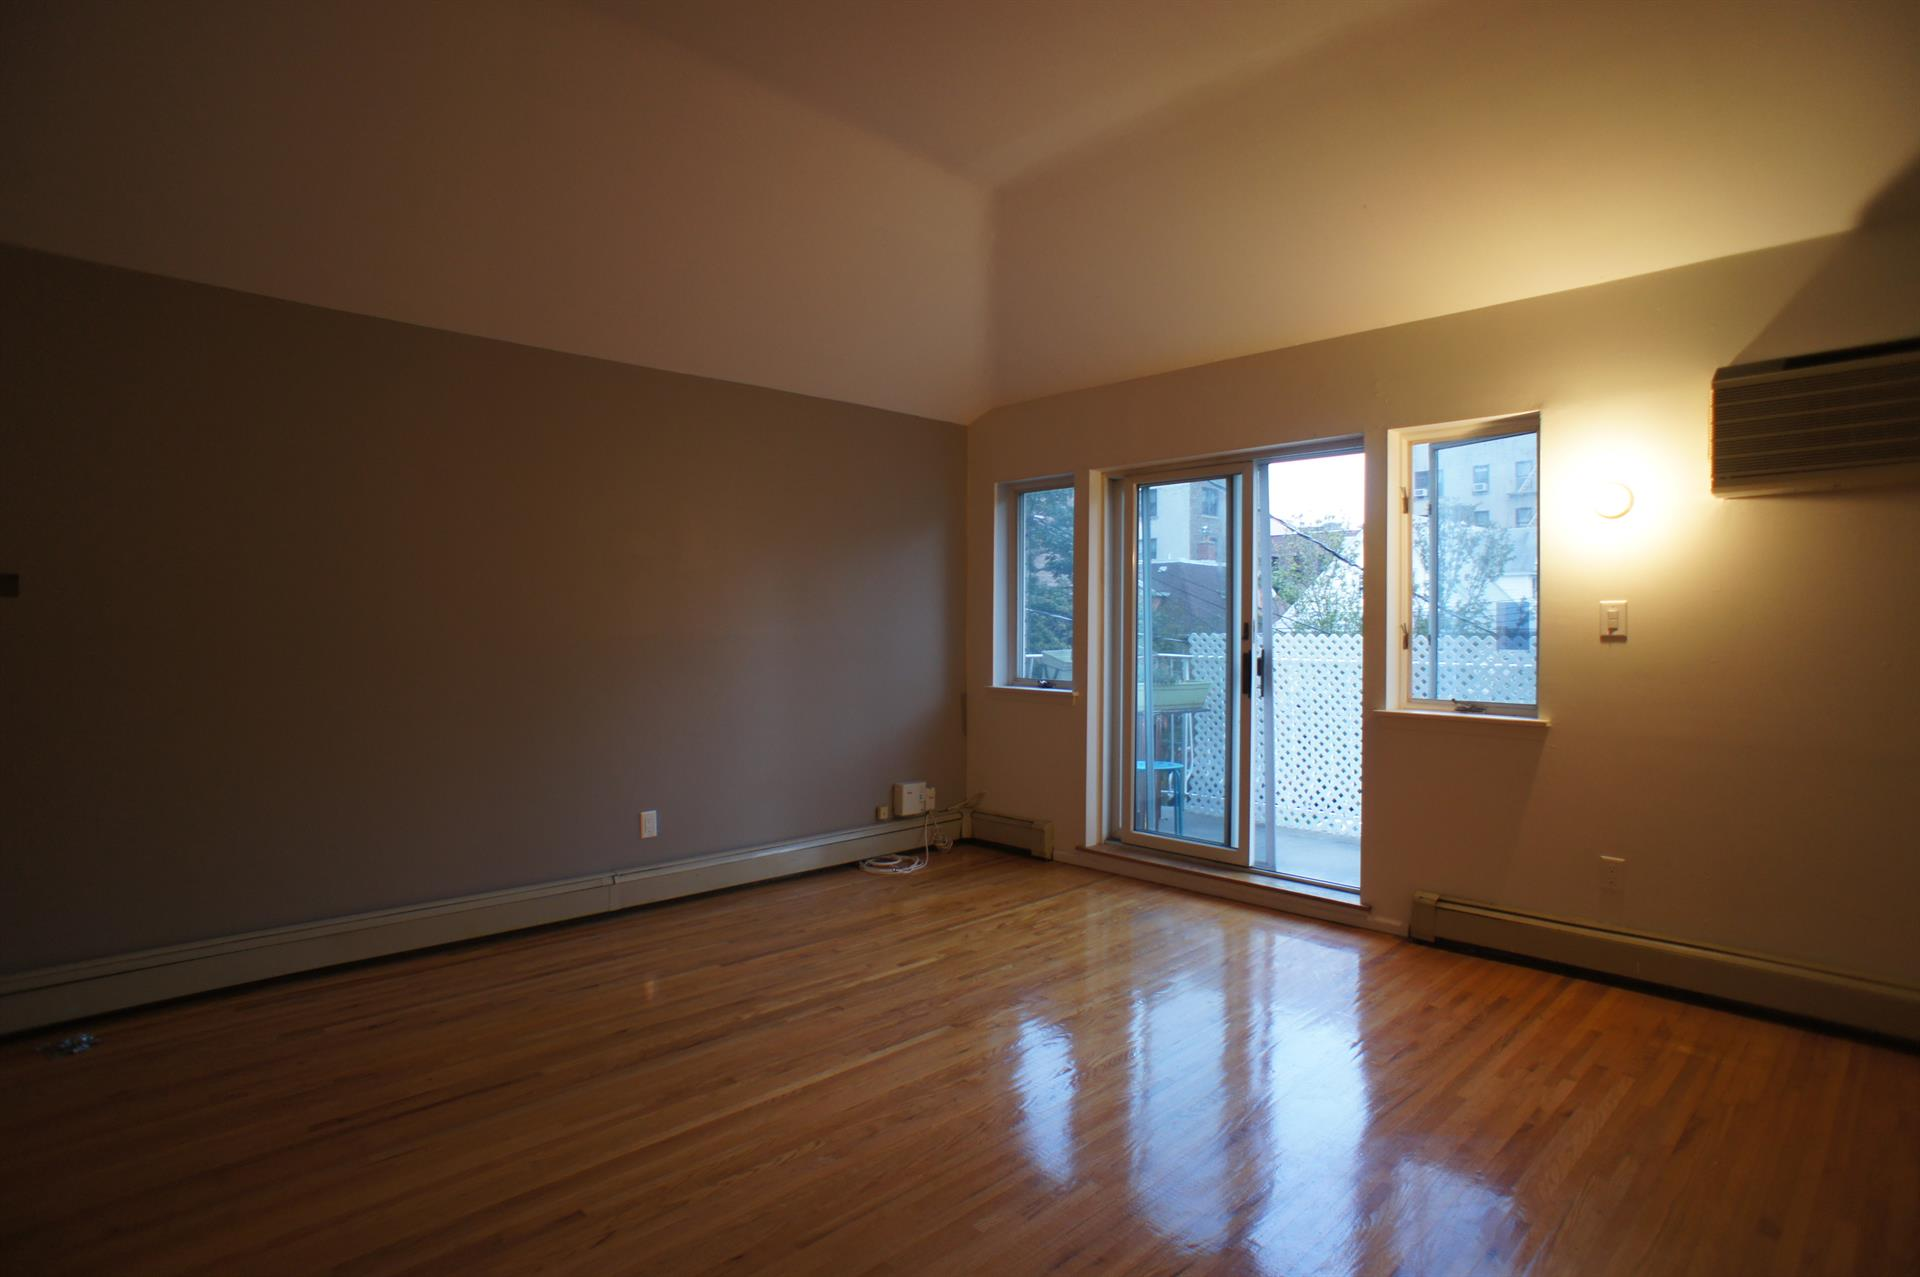 Multi Family for Sale at 9446 Ridge Blvd Brooklyn, New York 11209 United States